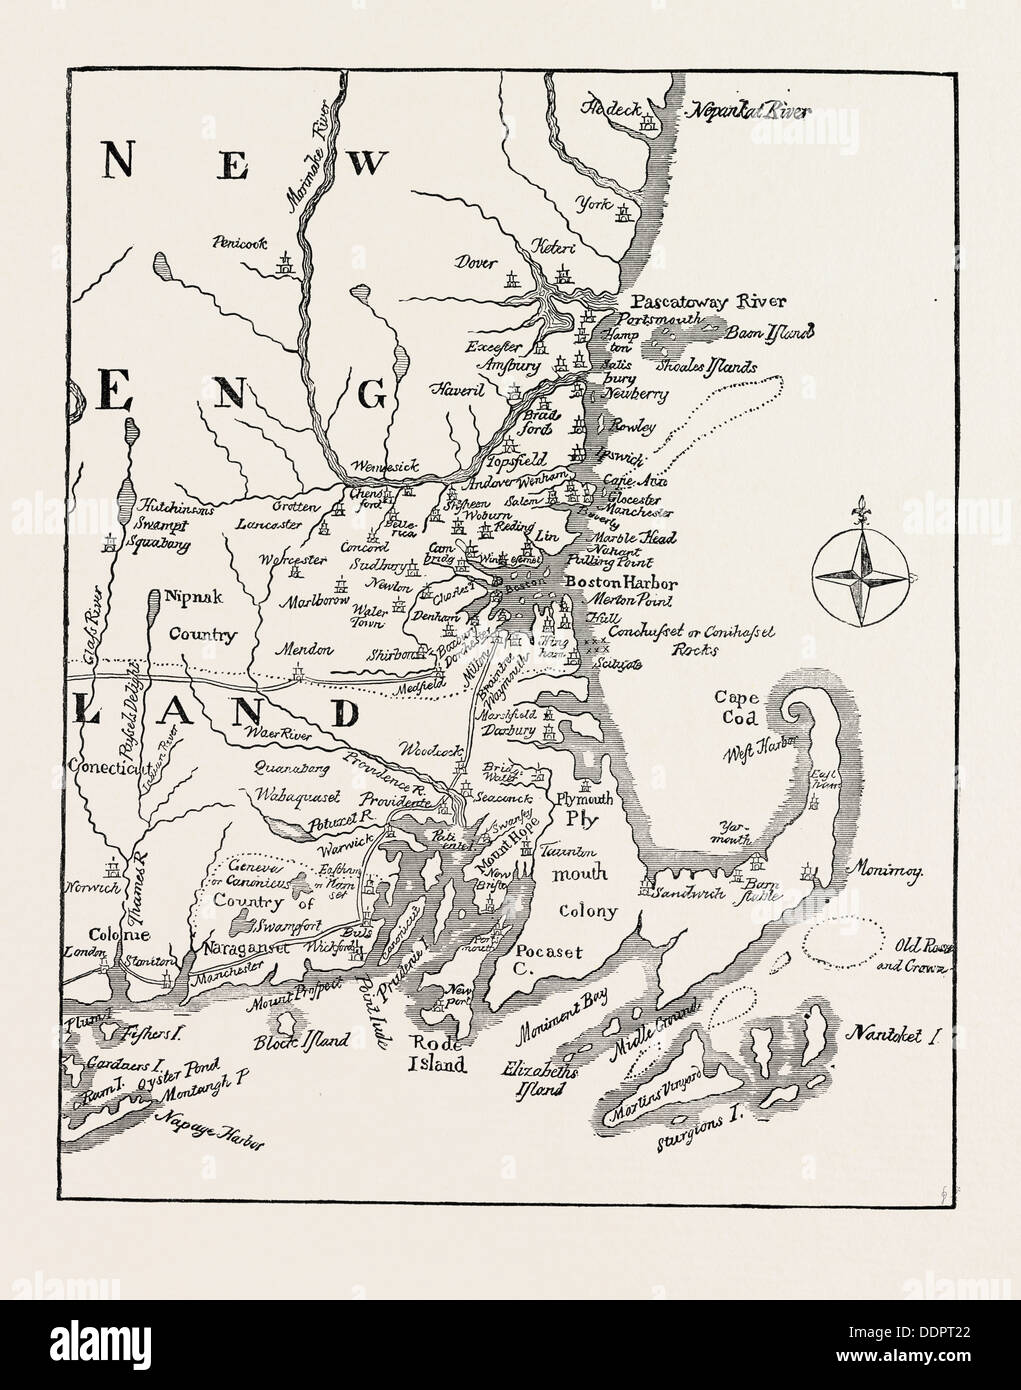 MAP OF NEW ENGLAND AT THE BEGINNING OF THE EIGHTEENTH CENTURY From Mather's Magnalia, UNITED STATES OF AMERICA, US, USA, 1870s - Stock Image